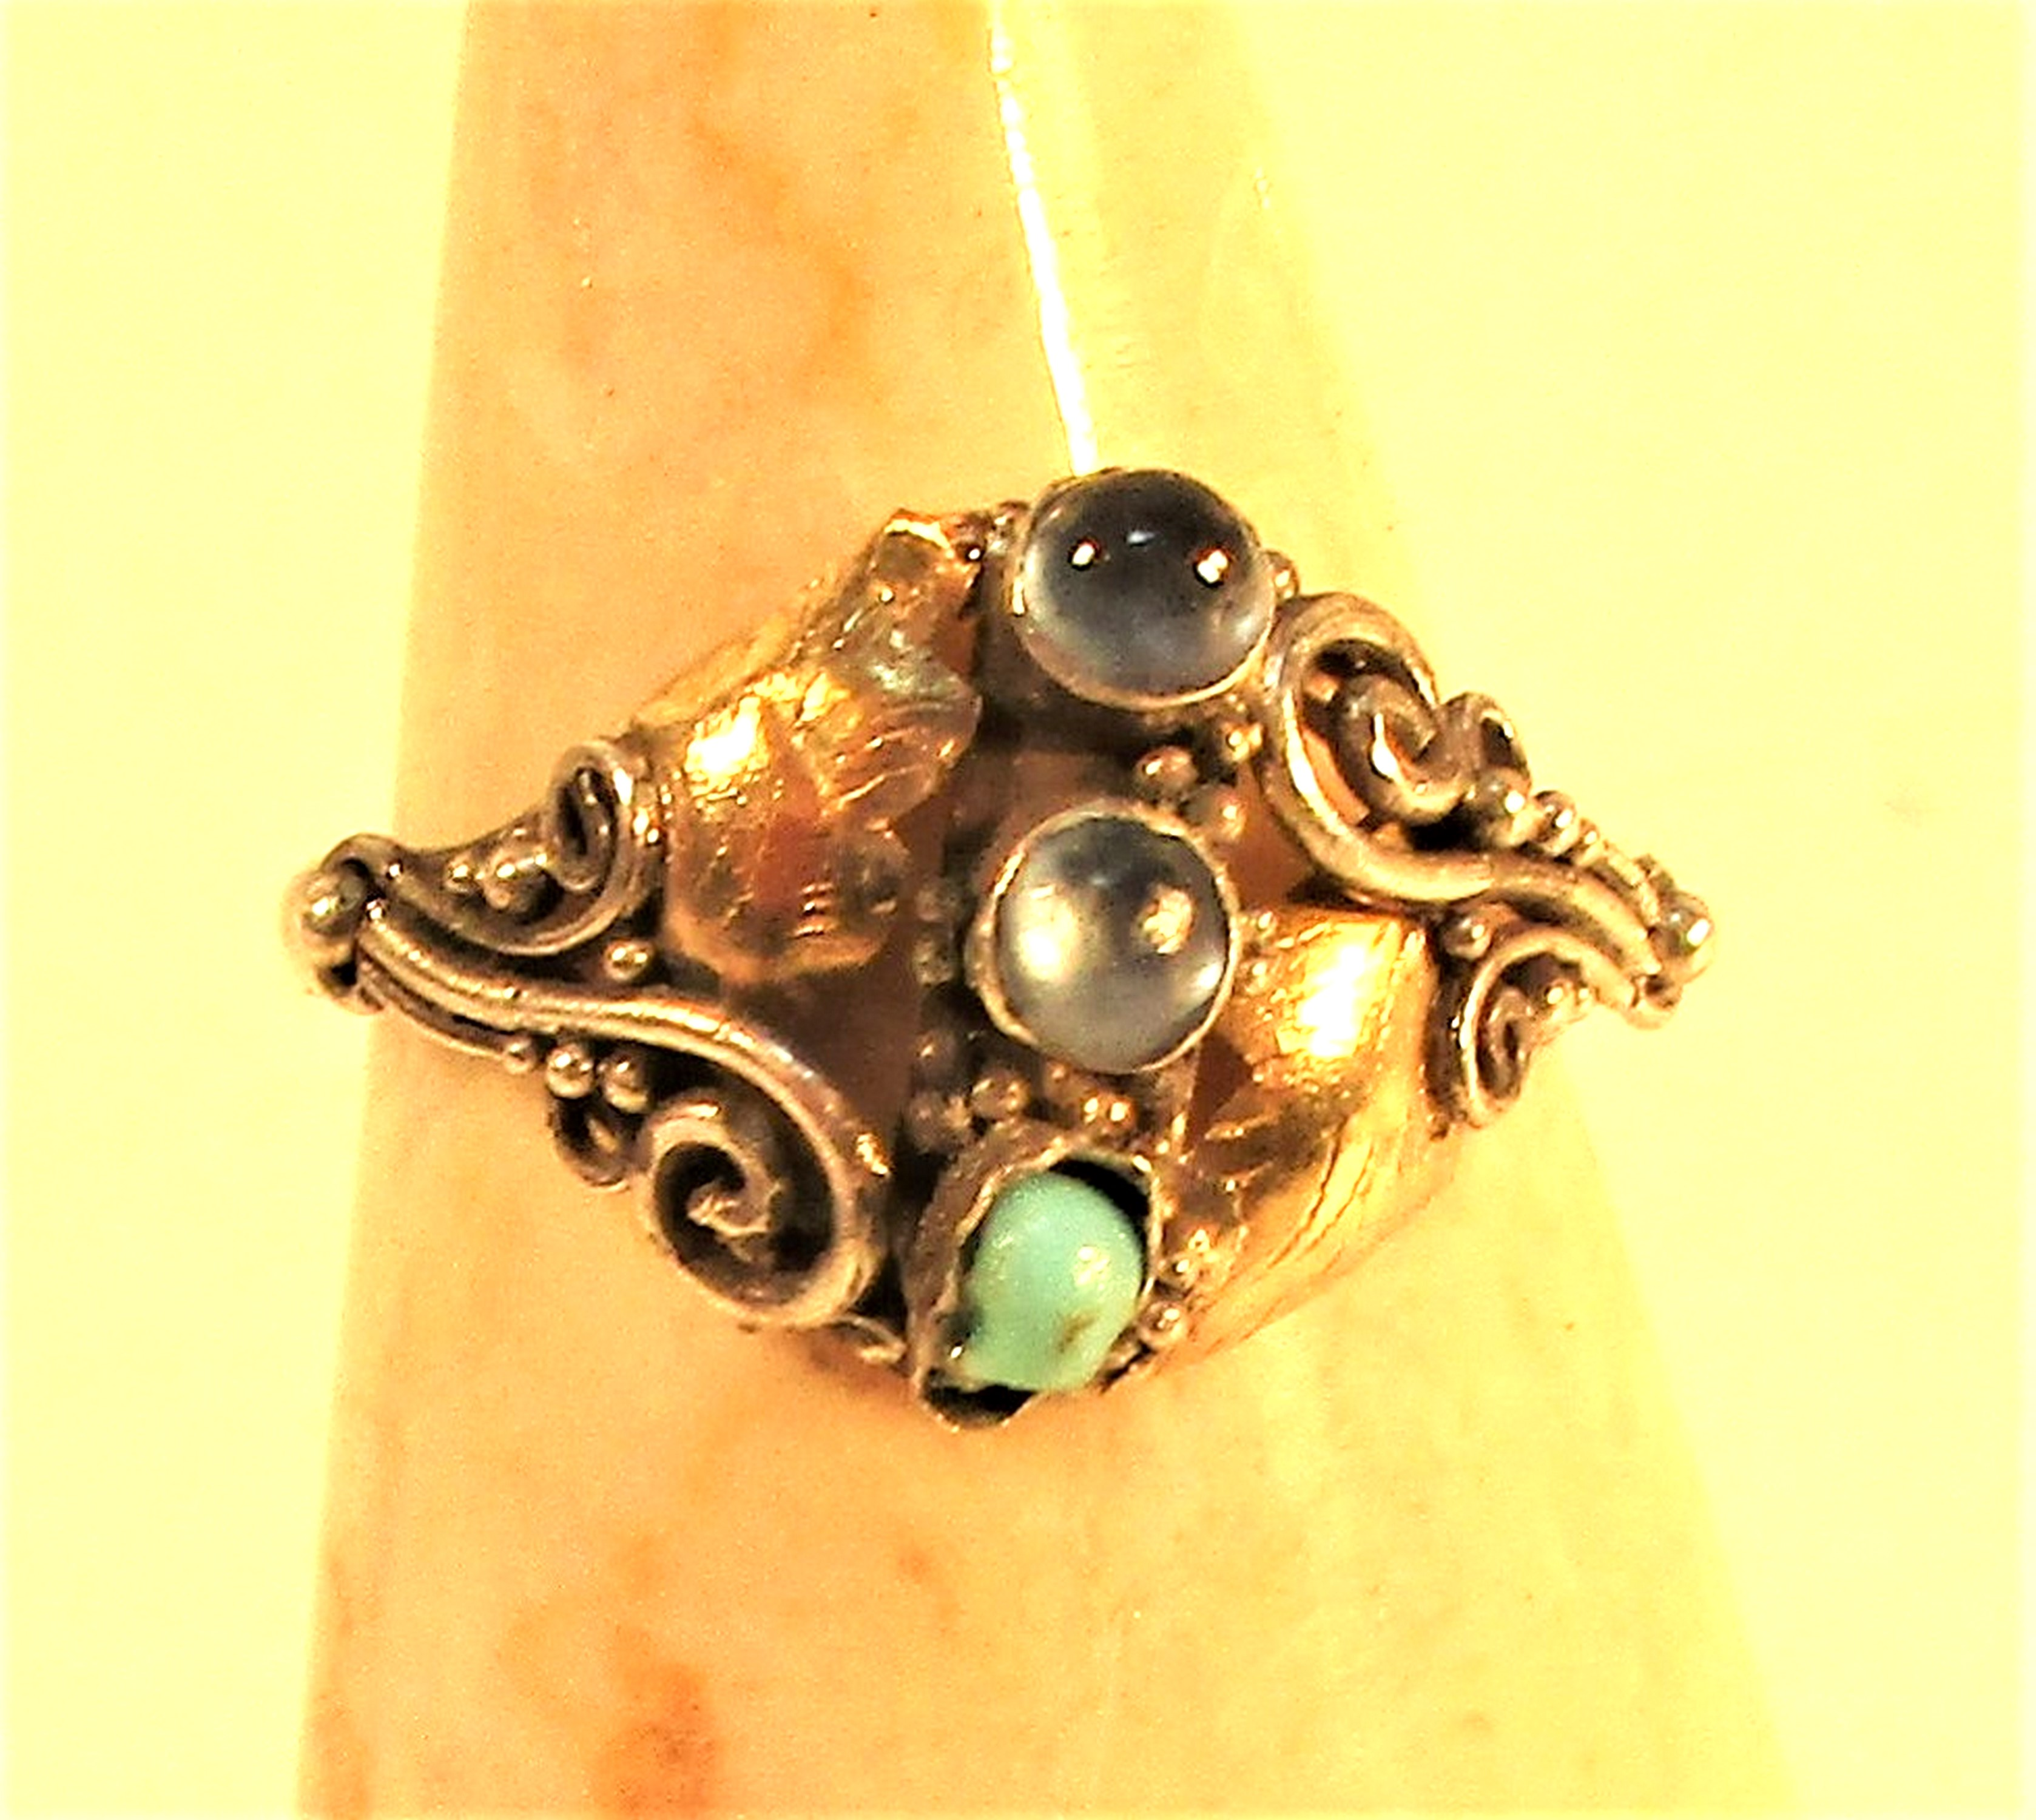 925 silver ring with gold wash and 3 semi precious stones.